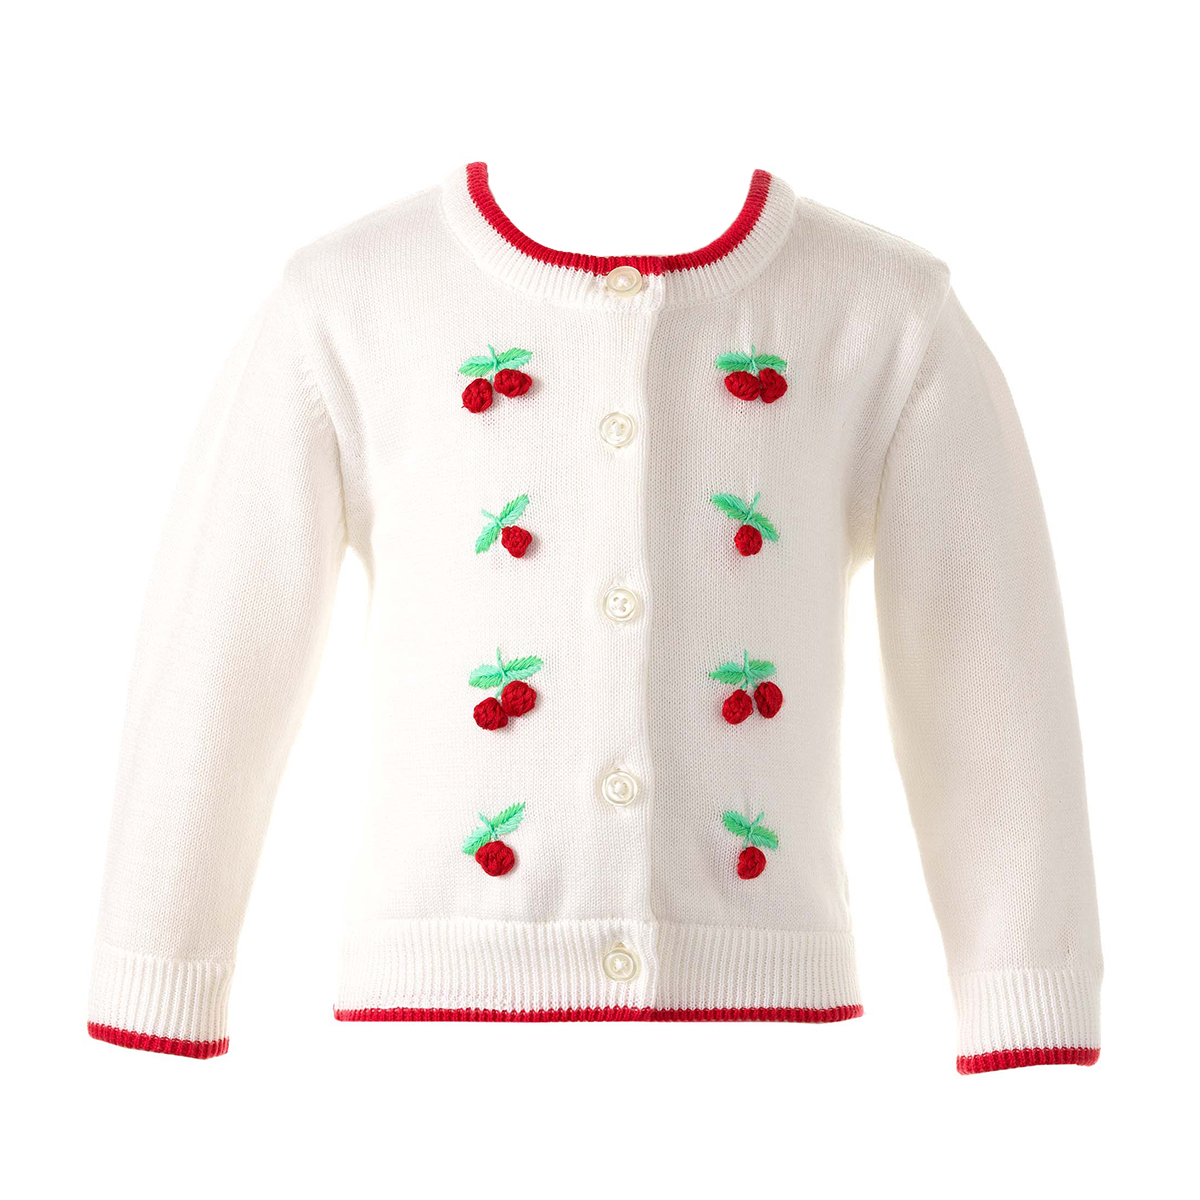 Rachel Riley Baby/Toddler/Big Kid Cherry Embroidered Cardigan